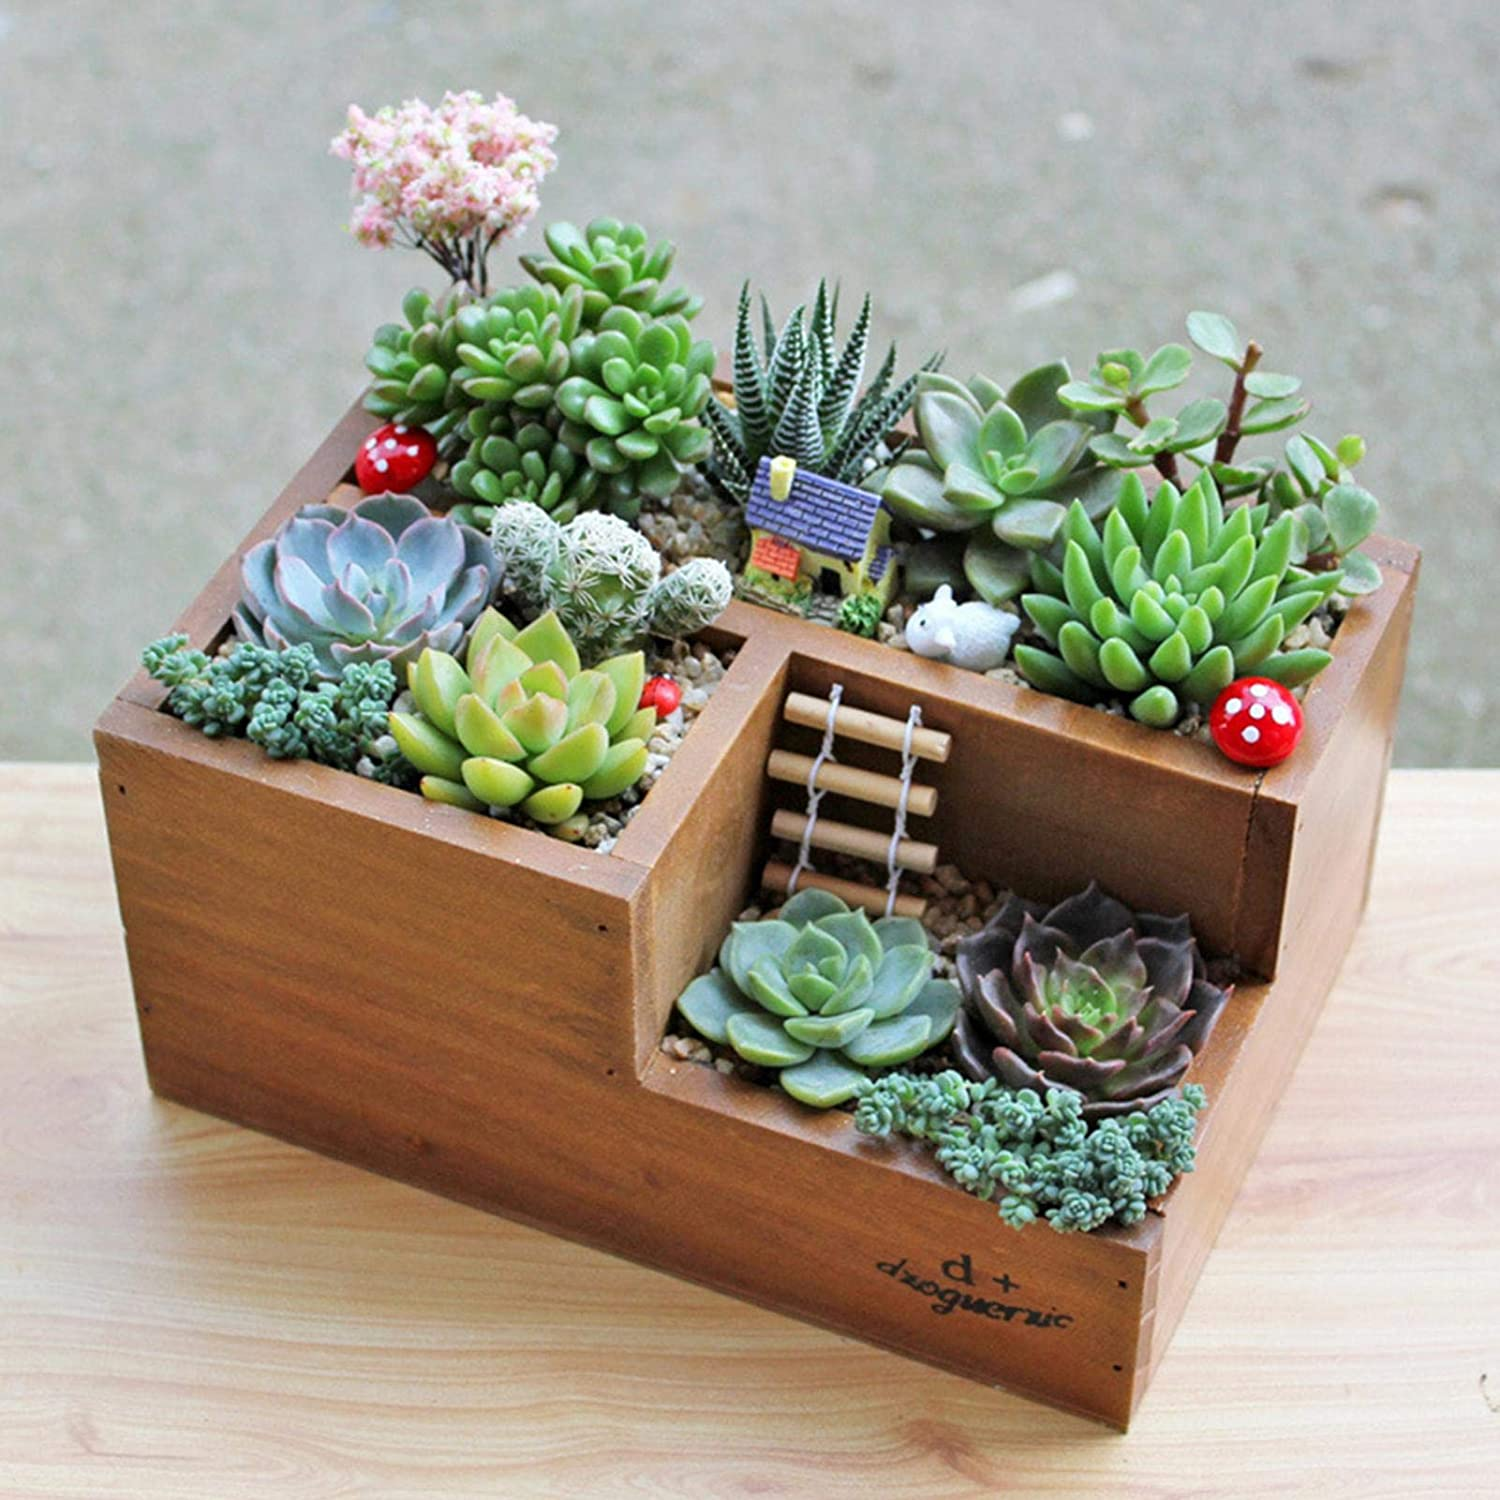 3 Grids Wooden Succulent Planter Box Flower Succulent Planter Pot Container Vintage Wooden Storage Box Desktop Divider Organizer Tray For Flowers Plants Jewelry Garden Outdoor